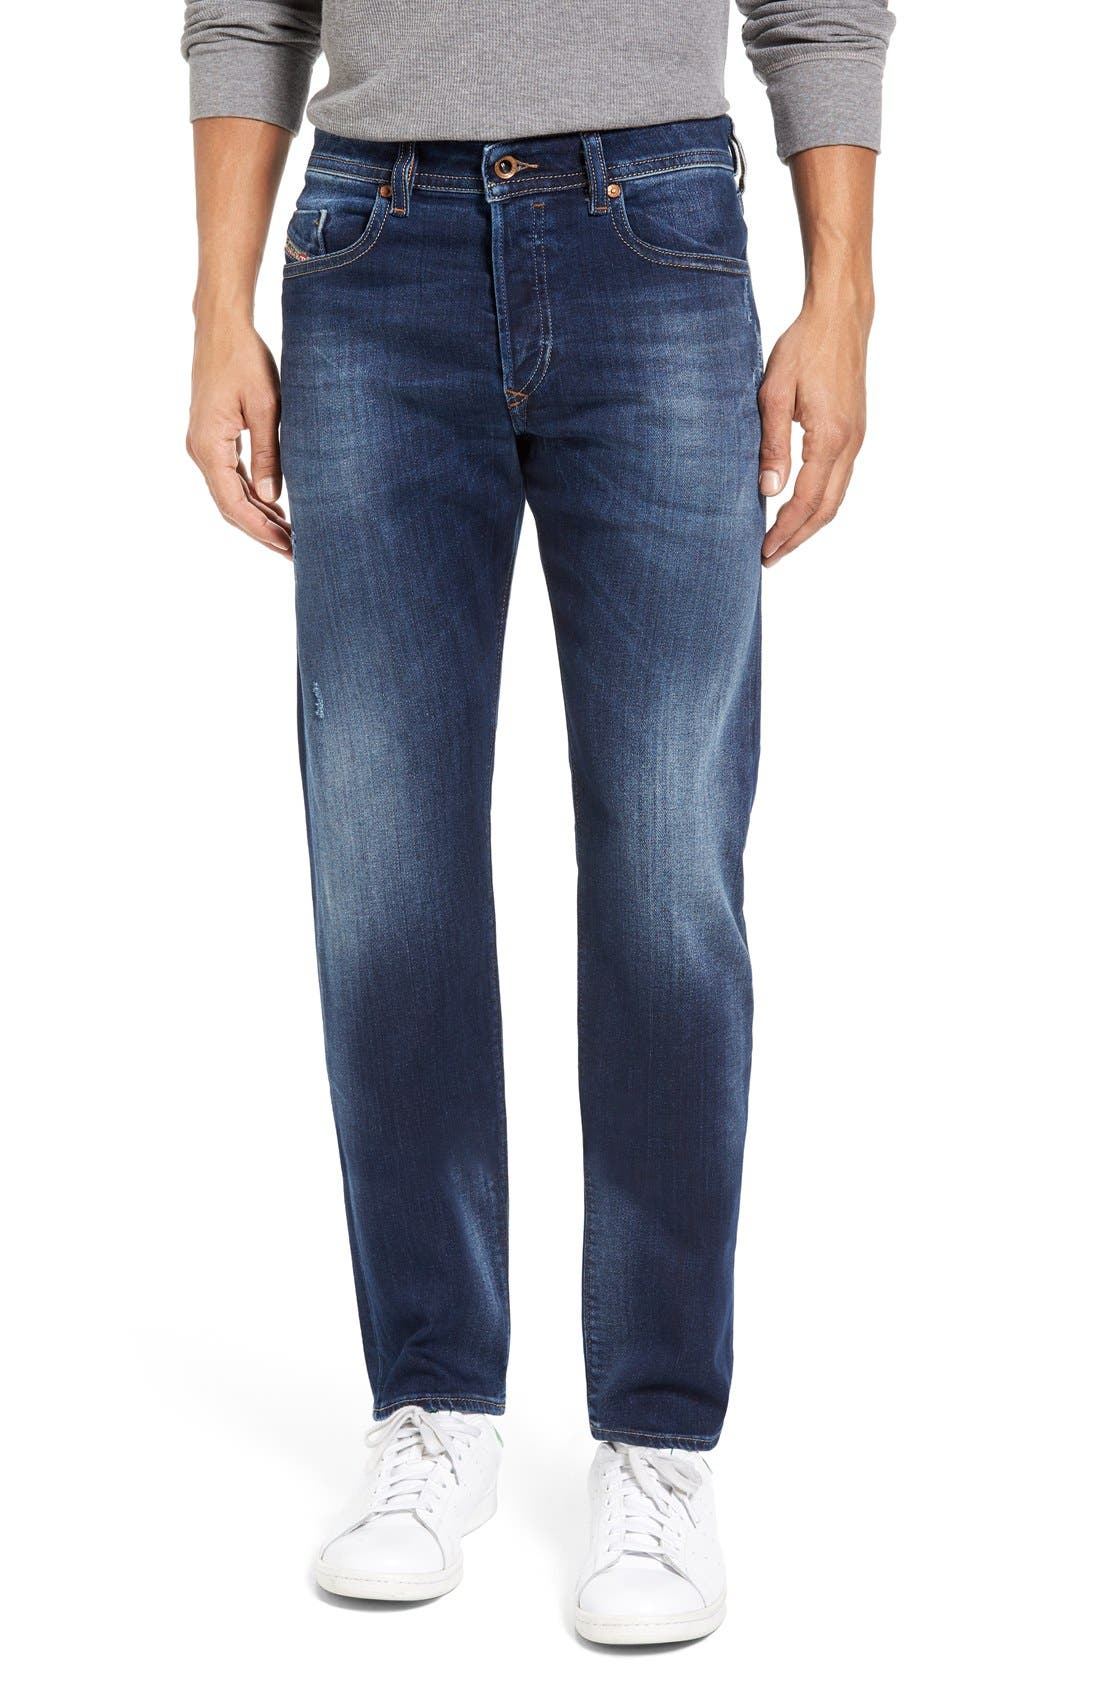 Buster Slim Straight Leg Jeans,                         Main,                         color, 860L